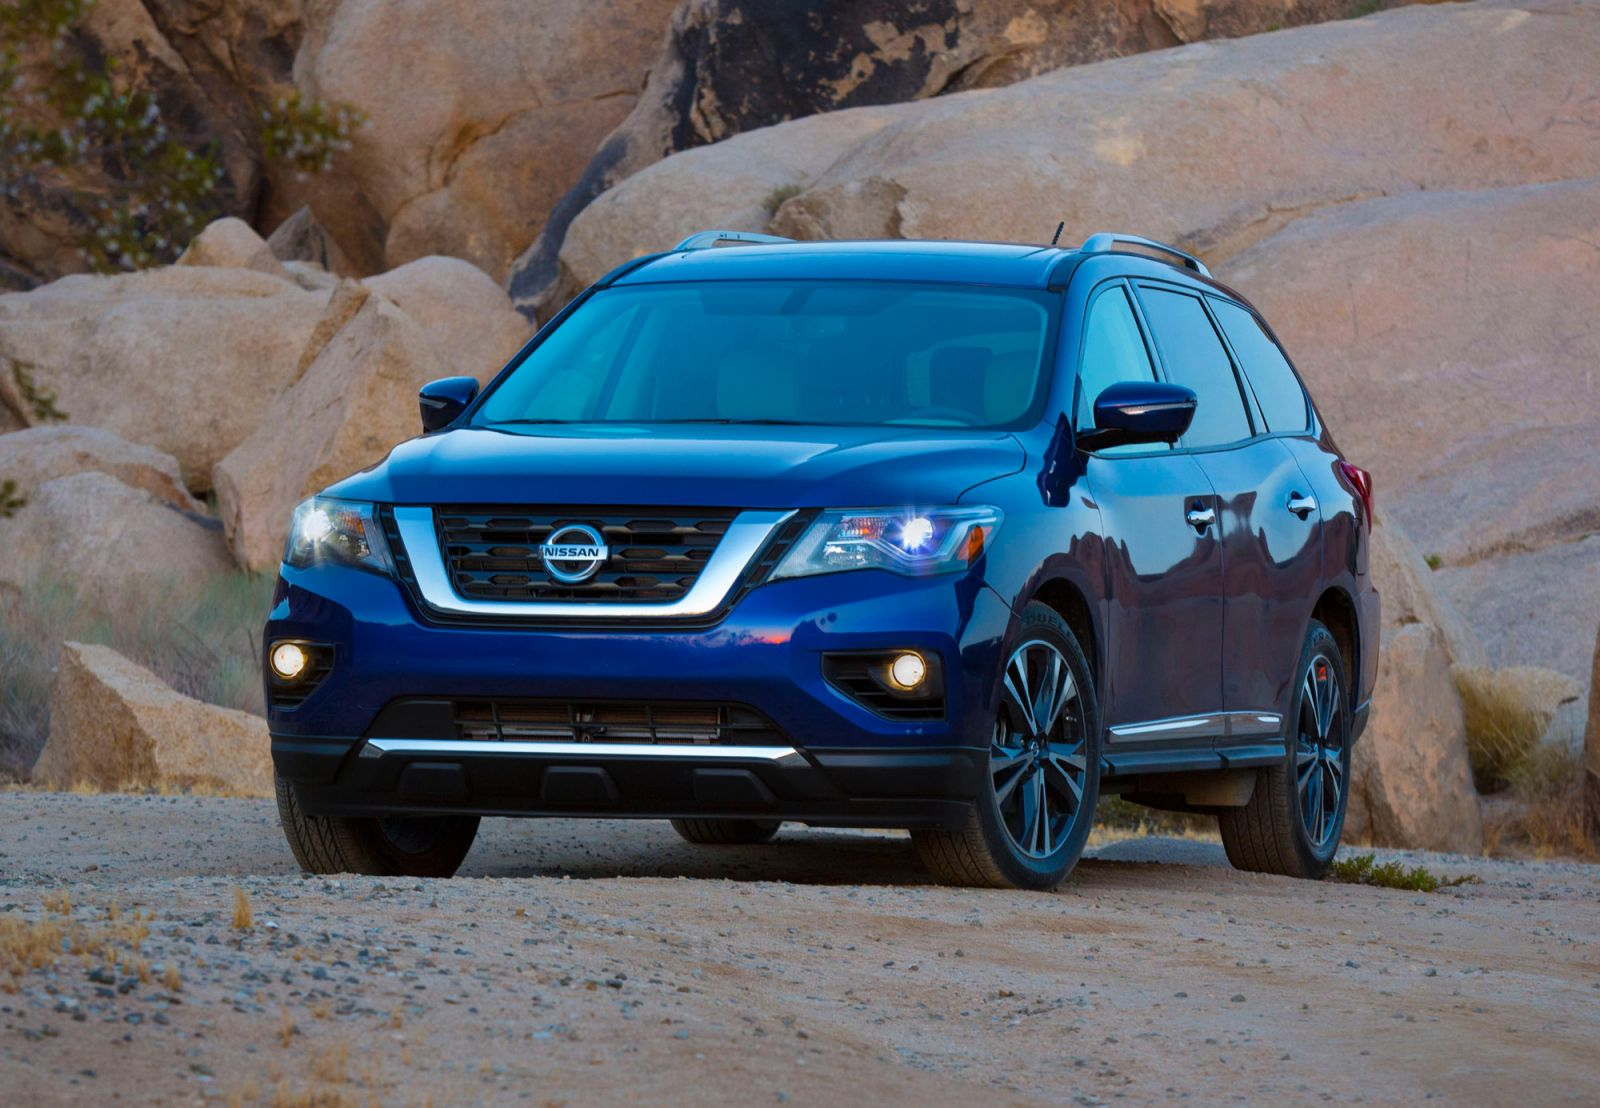 2017 Nissan Pathfinder - Price And Features For Updated Large SUV